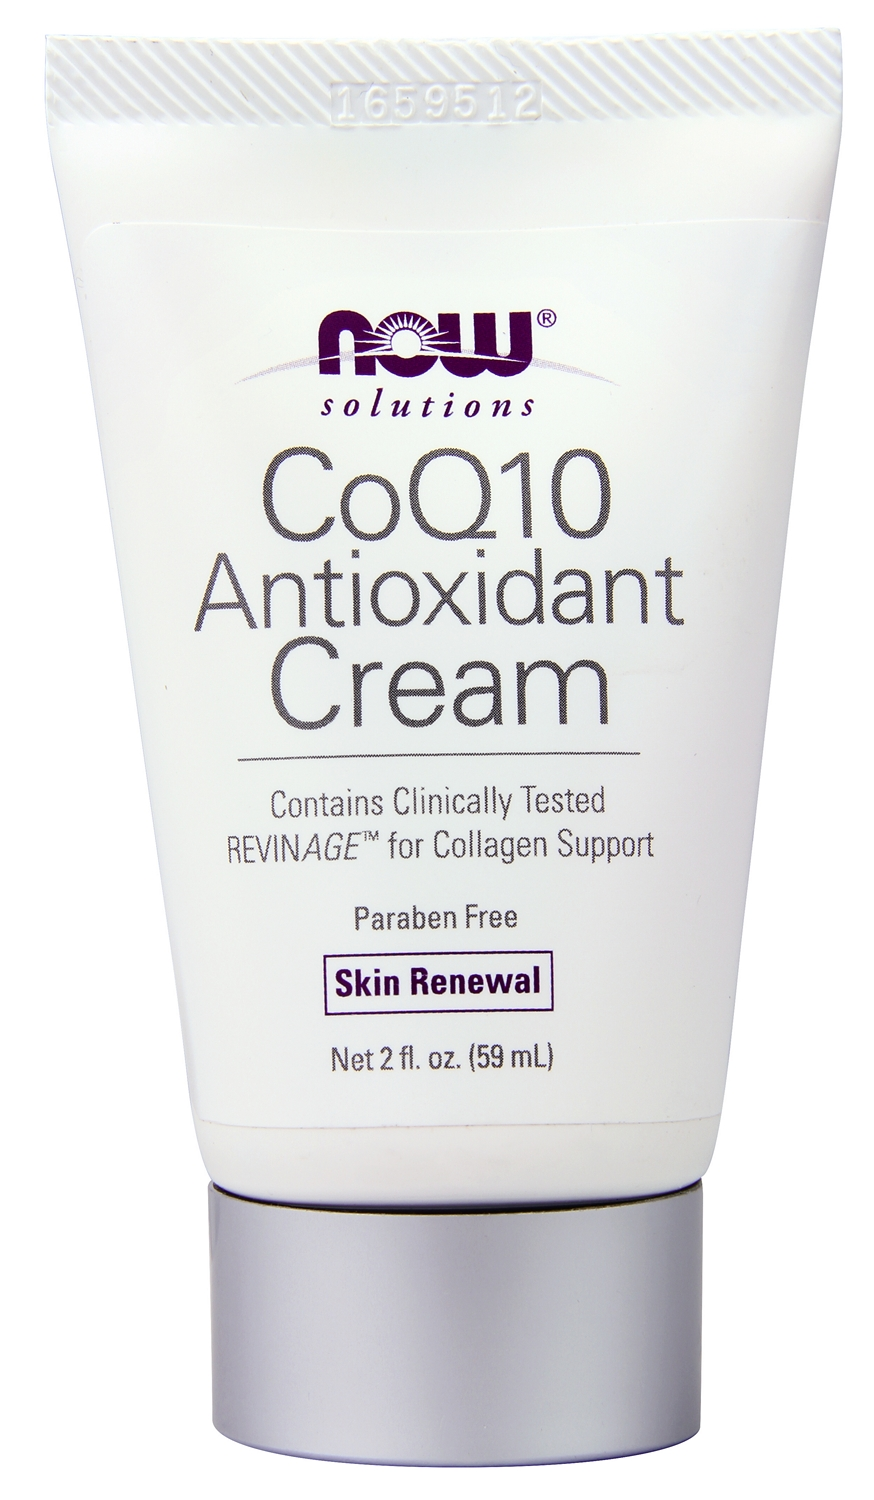 CoQ10 Antioxidant Cream 2 fl oz (60 ml) by NOW